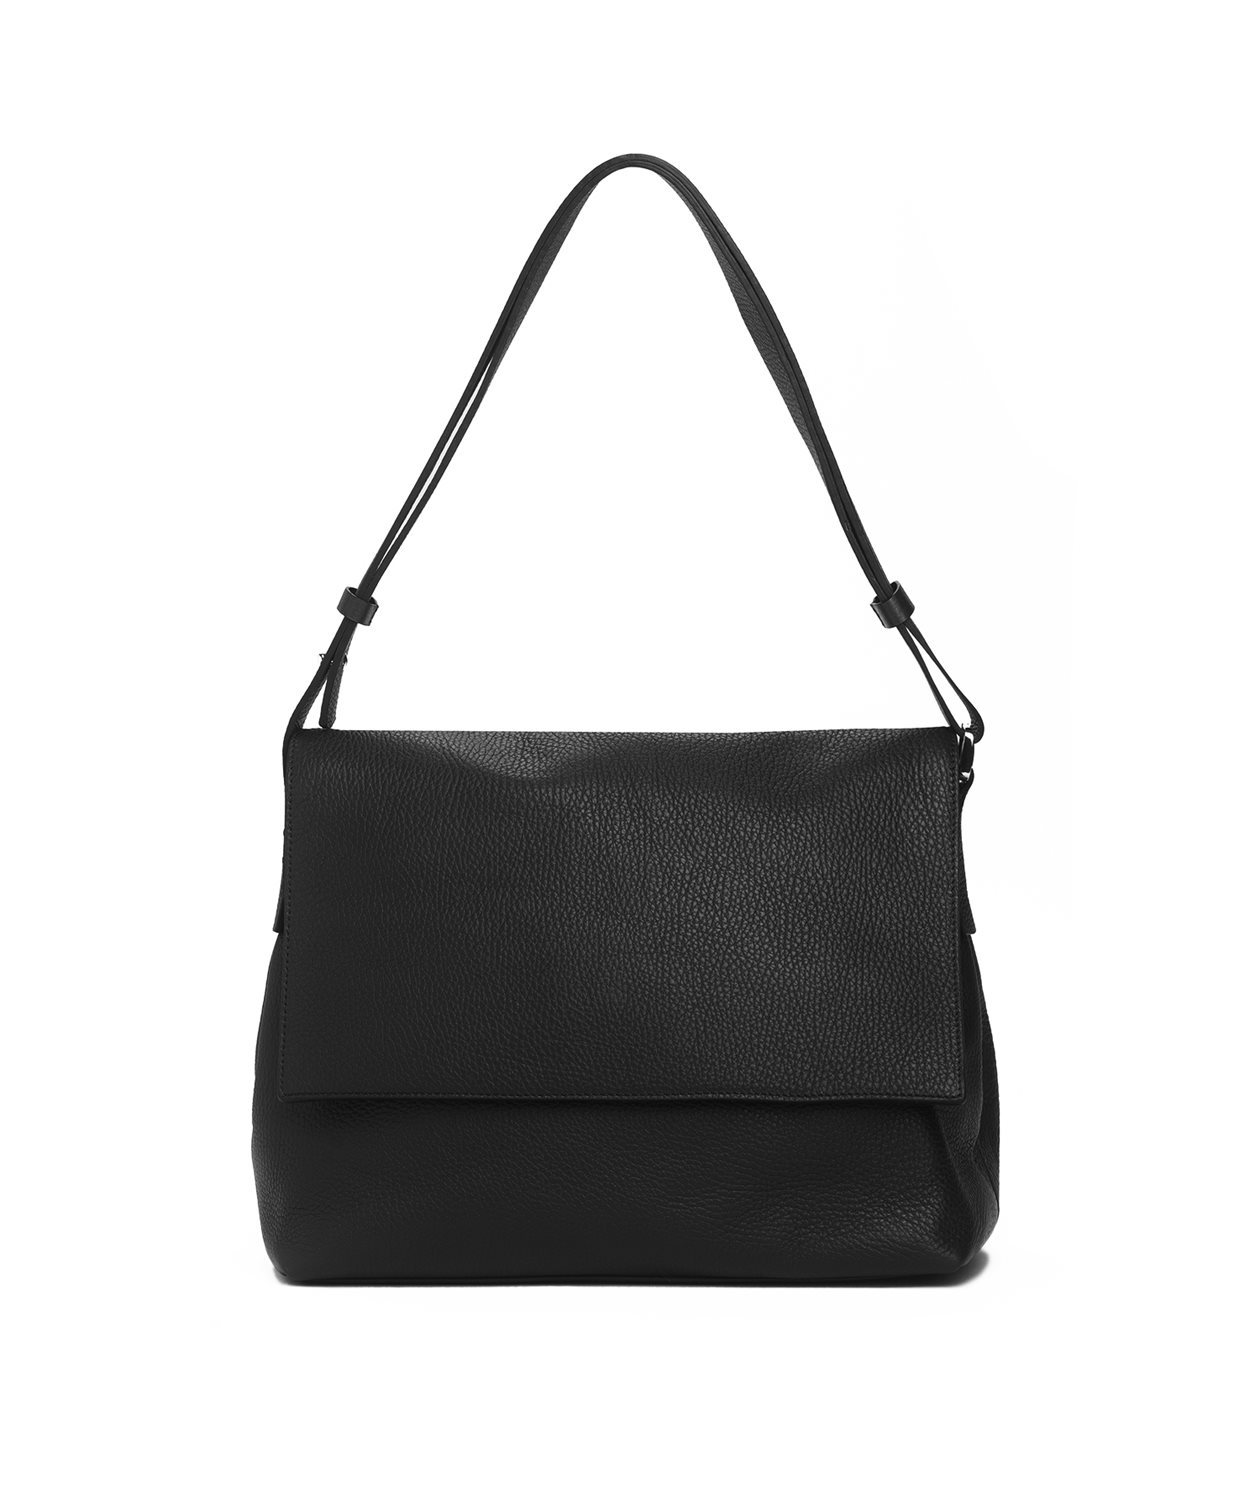 Palmgrens - Väska Grängad Svart - Genuine handcrafted leather since 1896 cdb1cda91fcb8